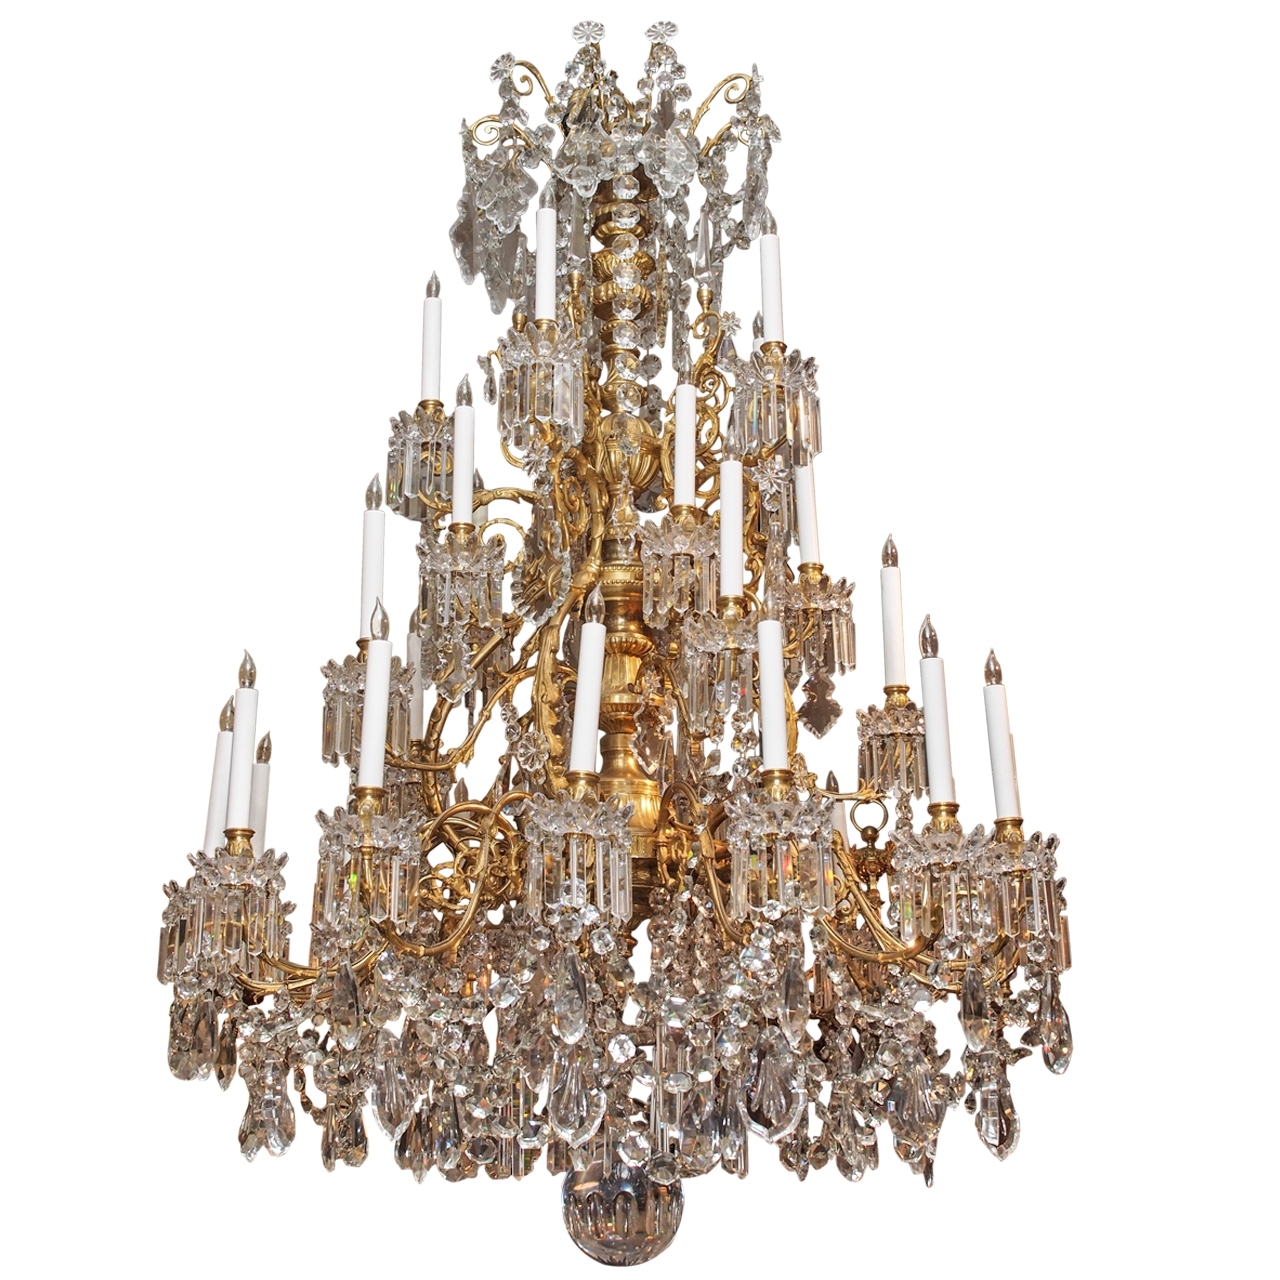 Magnificent Antique French Baccarat Crystal Chandelier Circa 1850 With Vintage Chandeliers (#3 of 12)